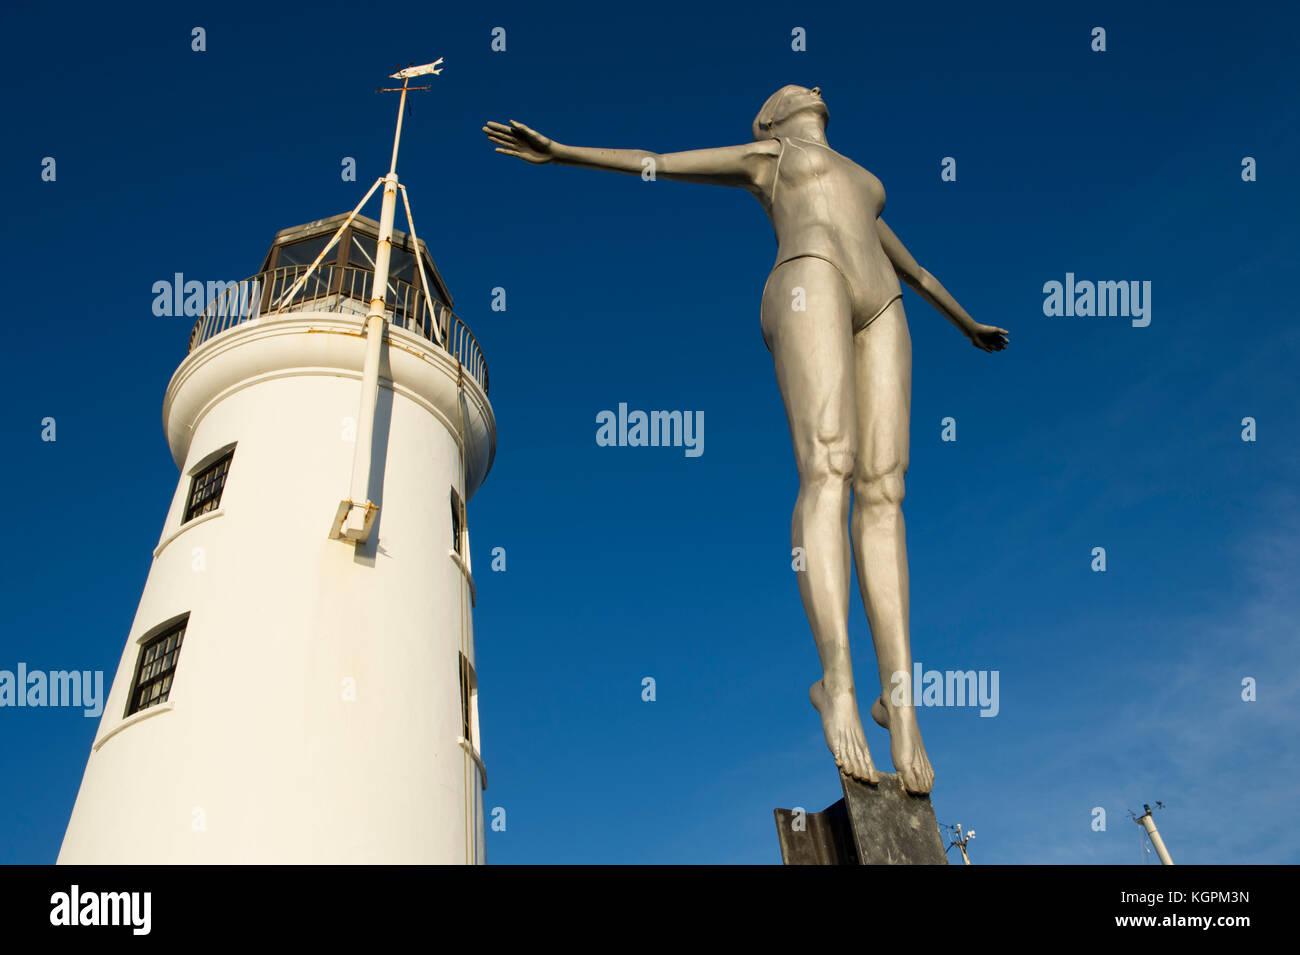 The Diving Belle statue and lighthouse located on the harbour in the North Yorkshire seaside town of Scarborough - Stock Image